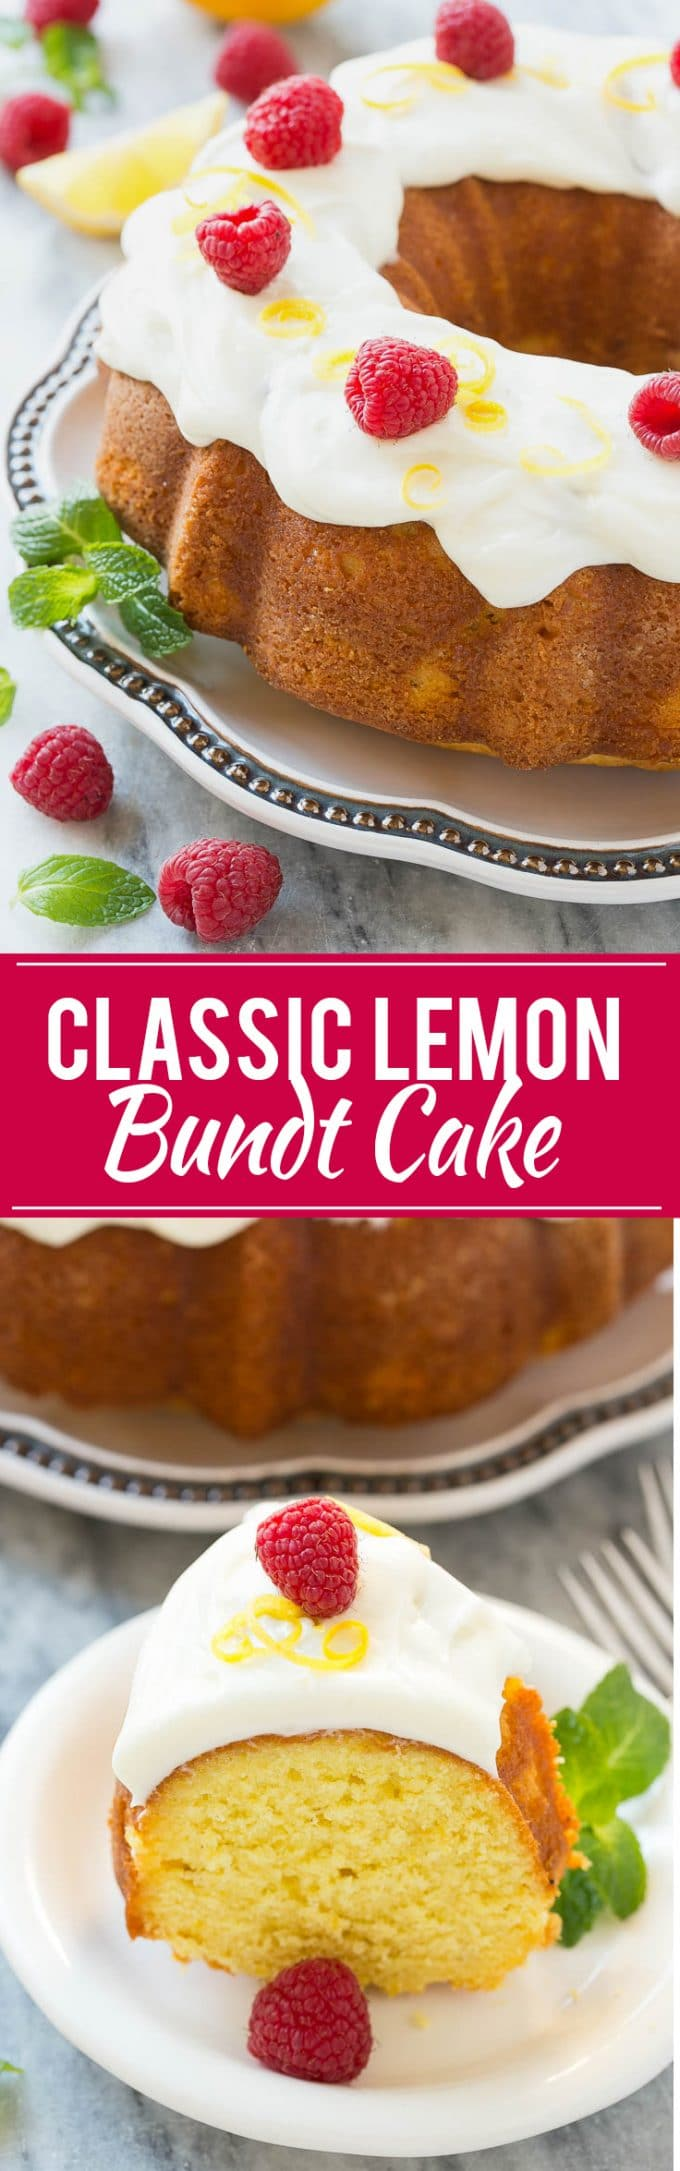 Classic Lemon Bundt Cake Recipe | Cream Cheese Frosting | Lemon Bundt Cake with Cream Cheese Frosting | Best Lemon Bundt Cake